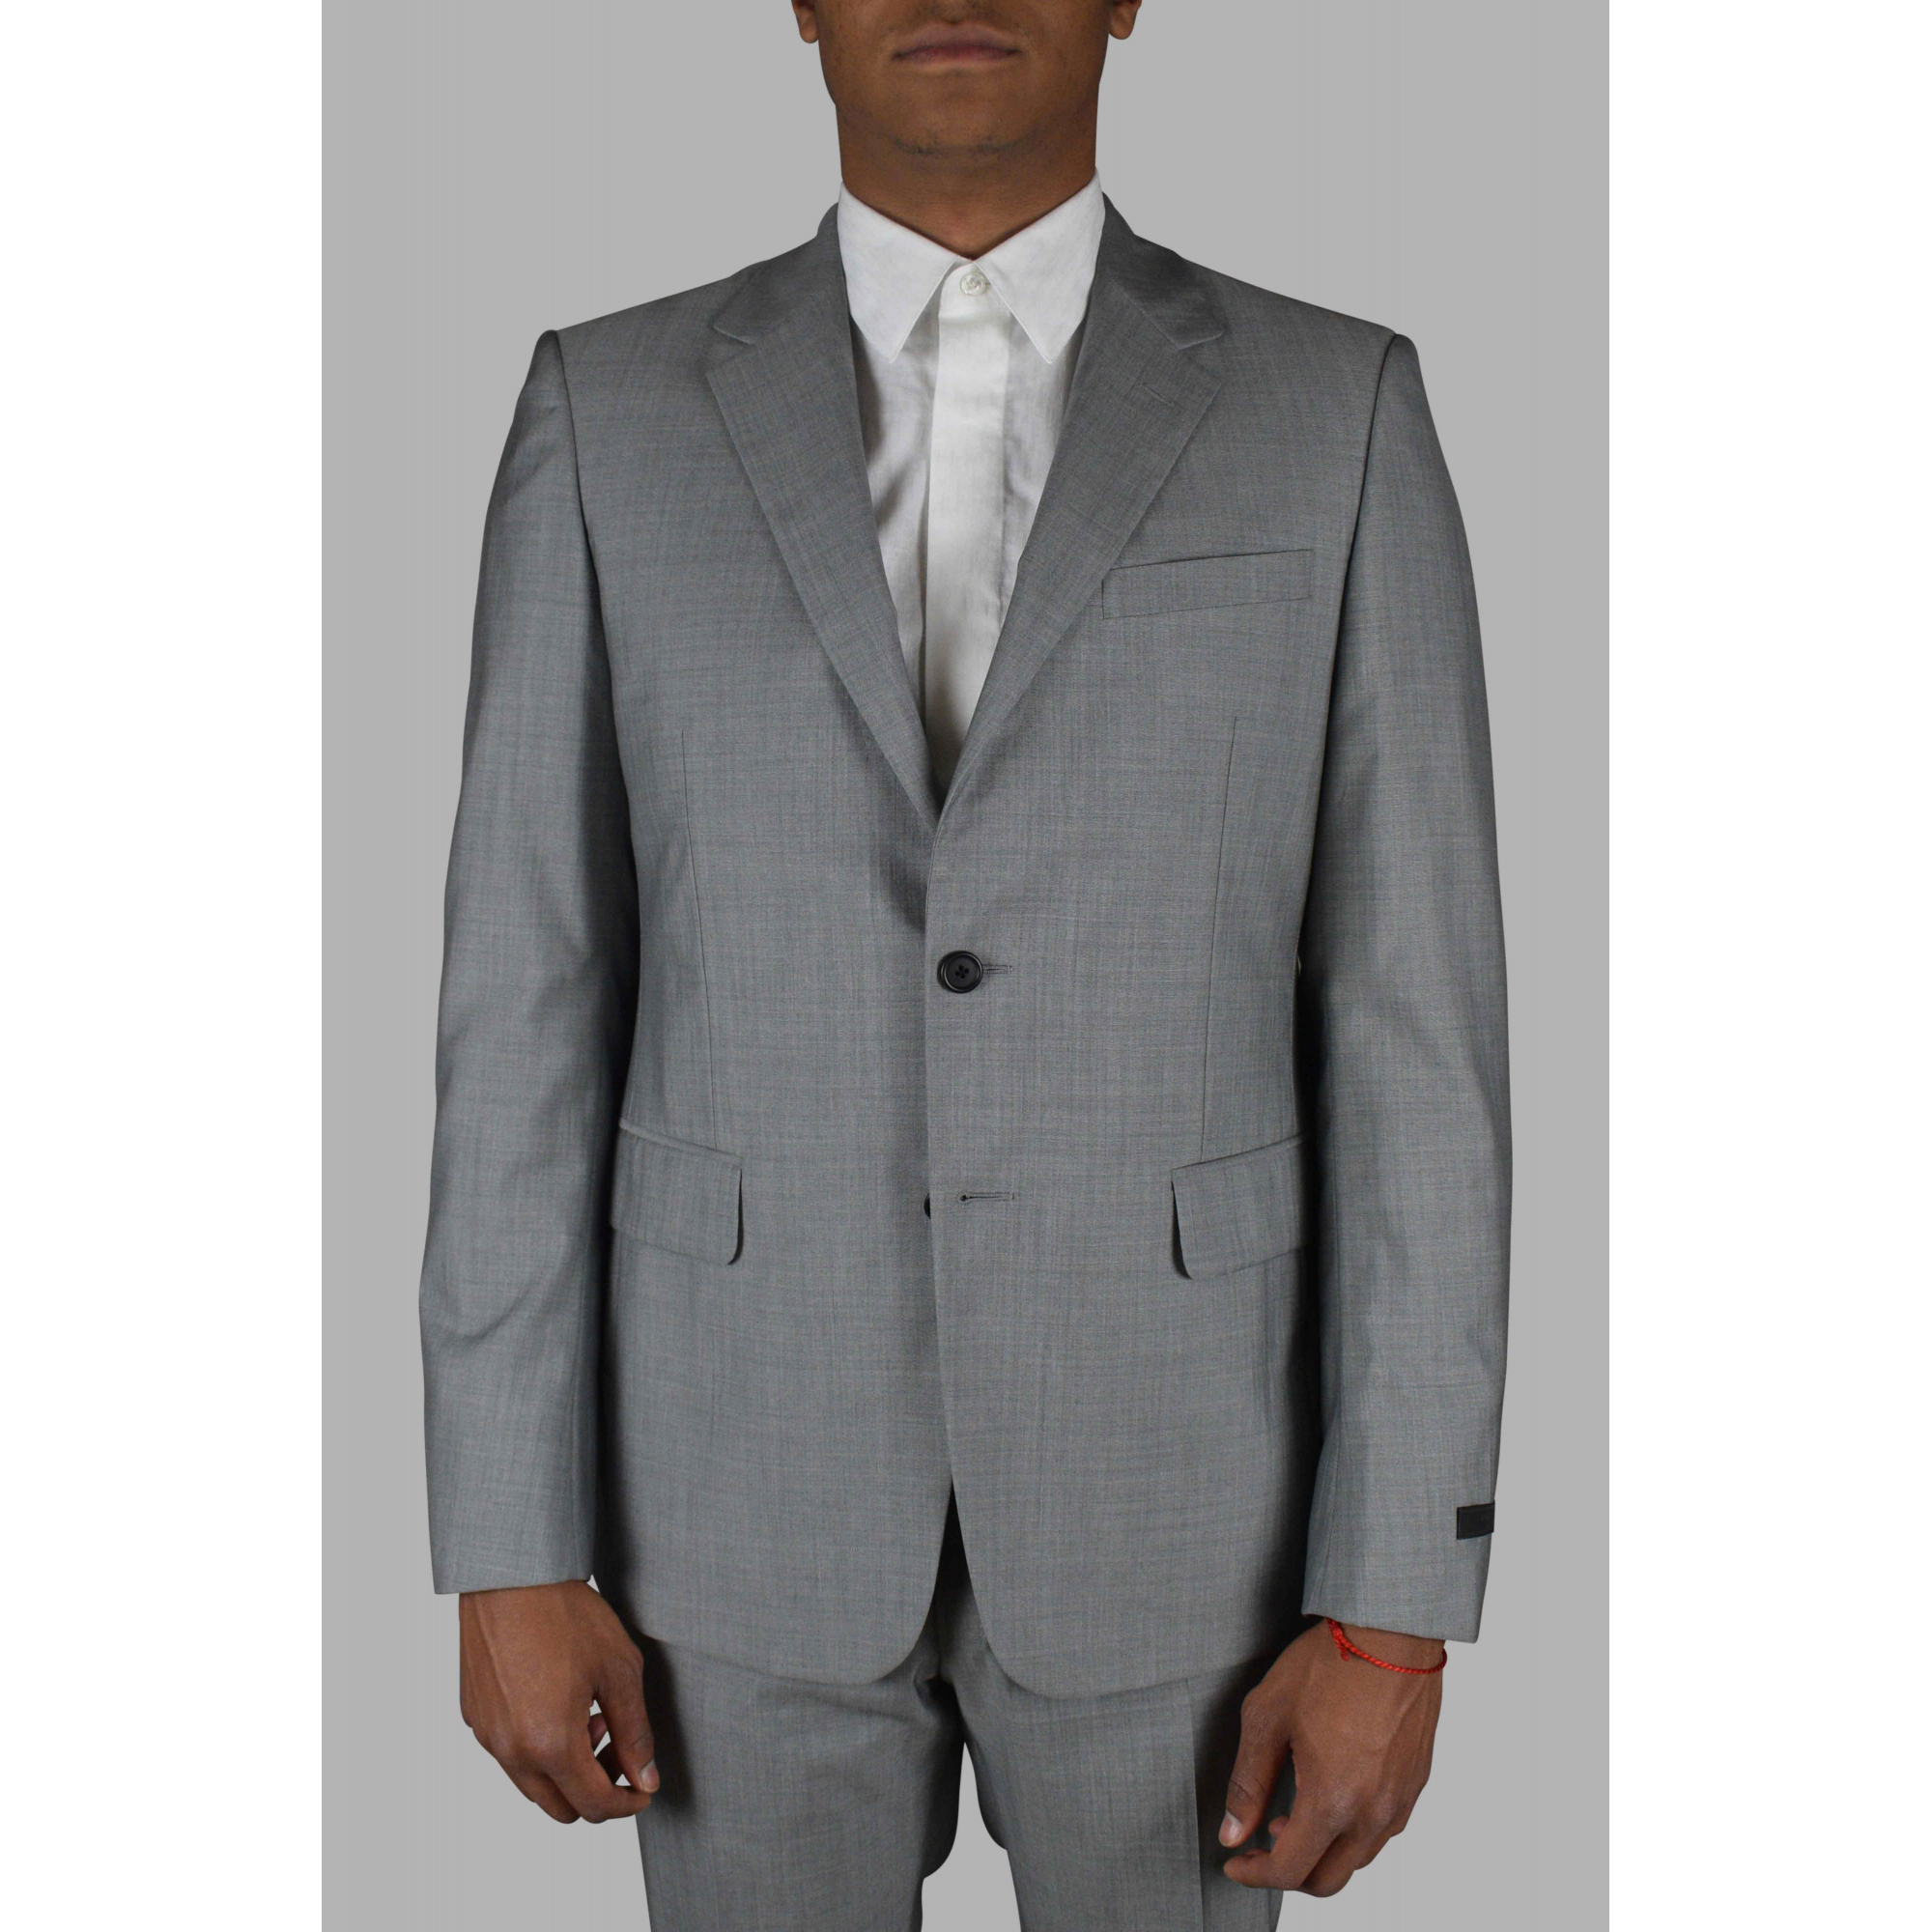 Prada two-piece suit in gray wool and silk.